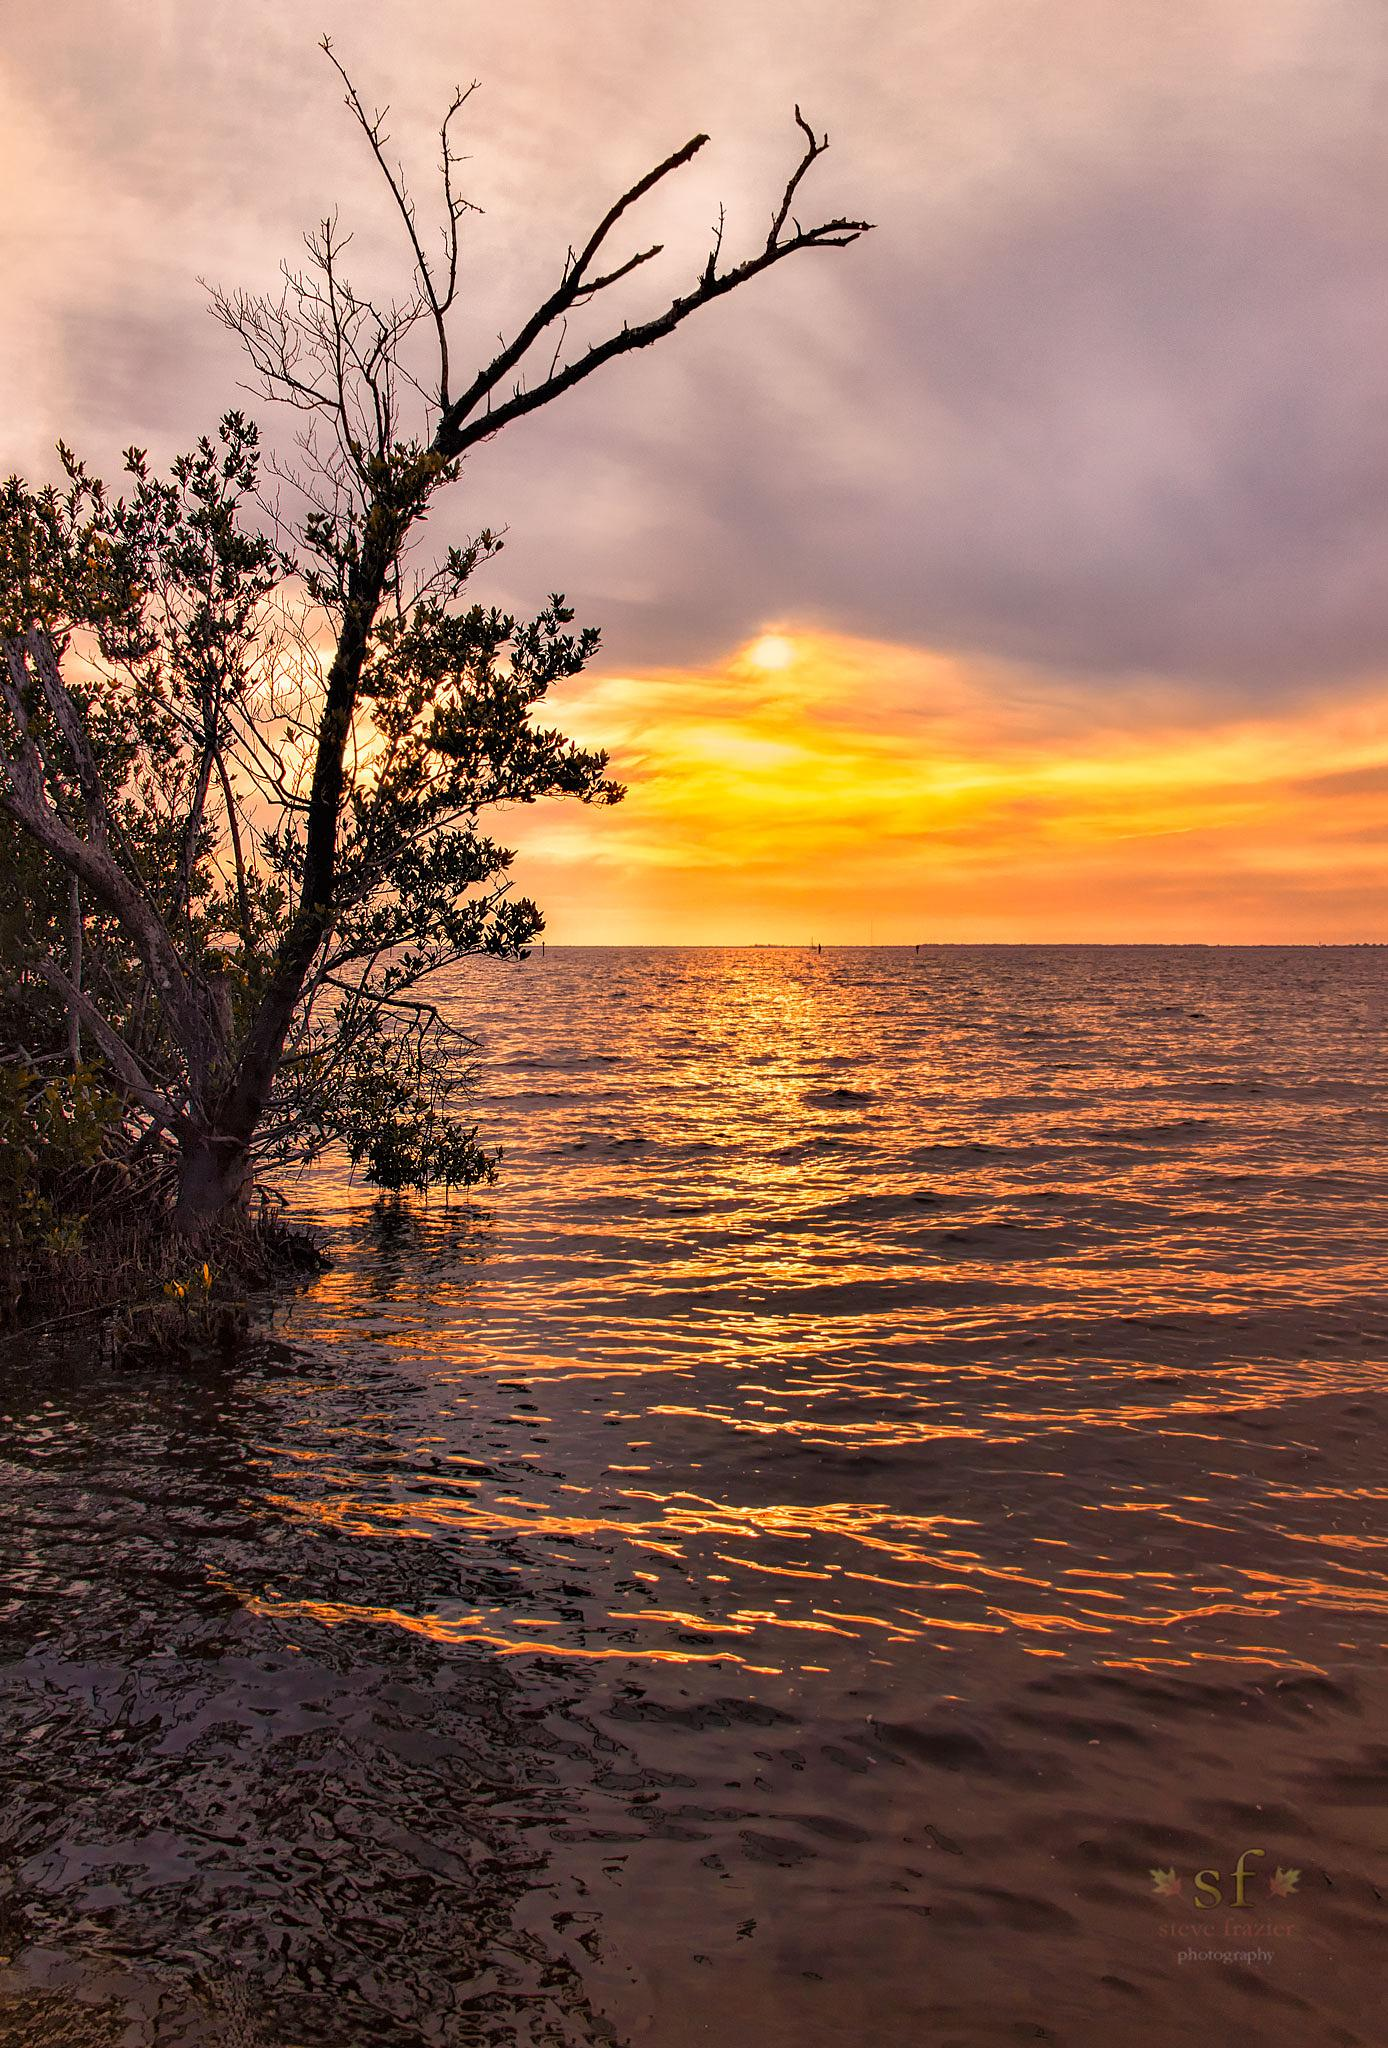 Deep in the Mangroves at Sunset by Steve Frazier